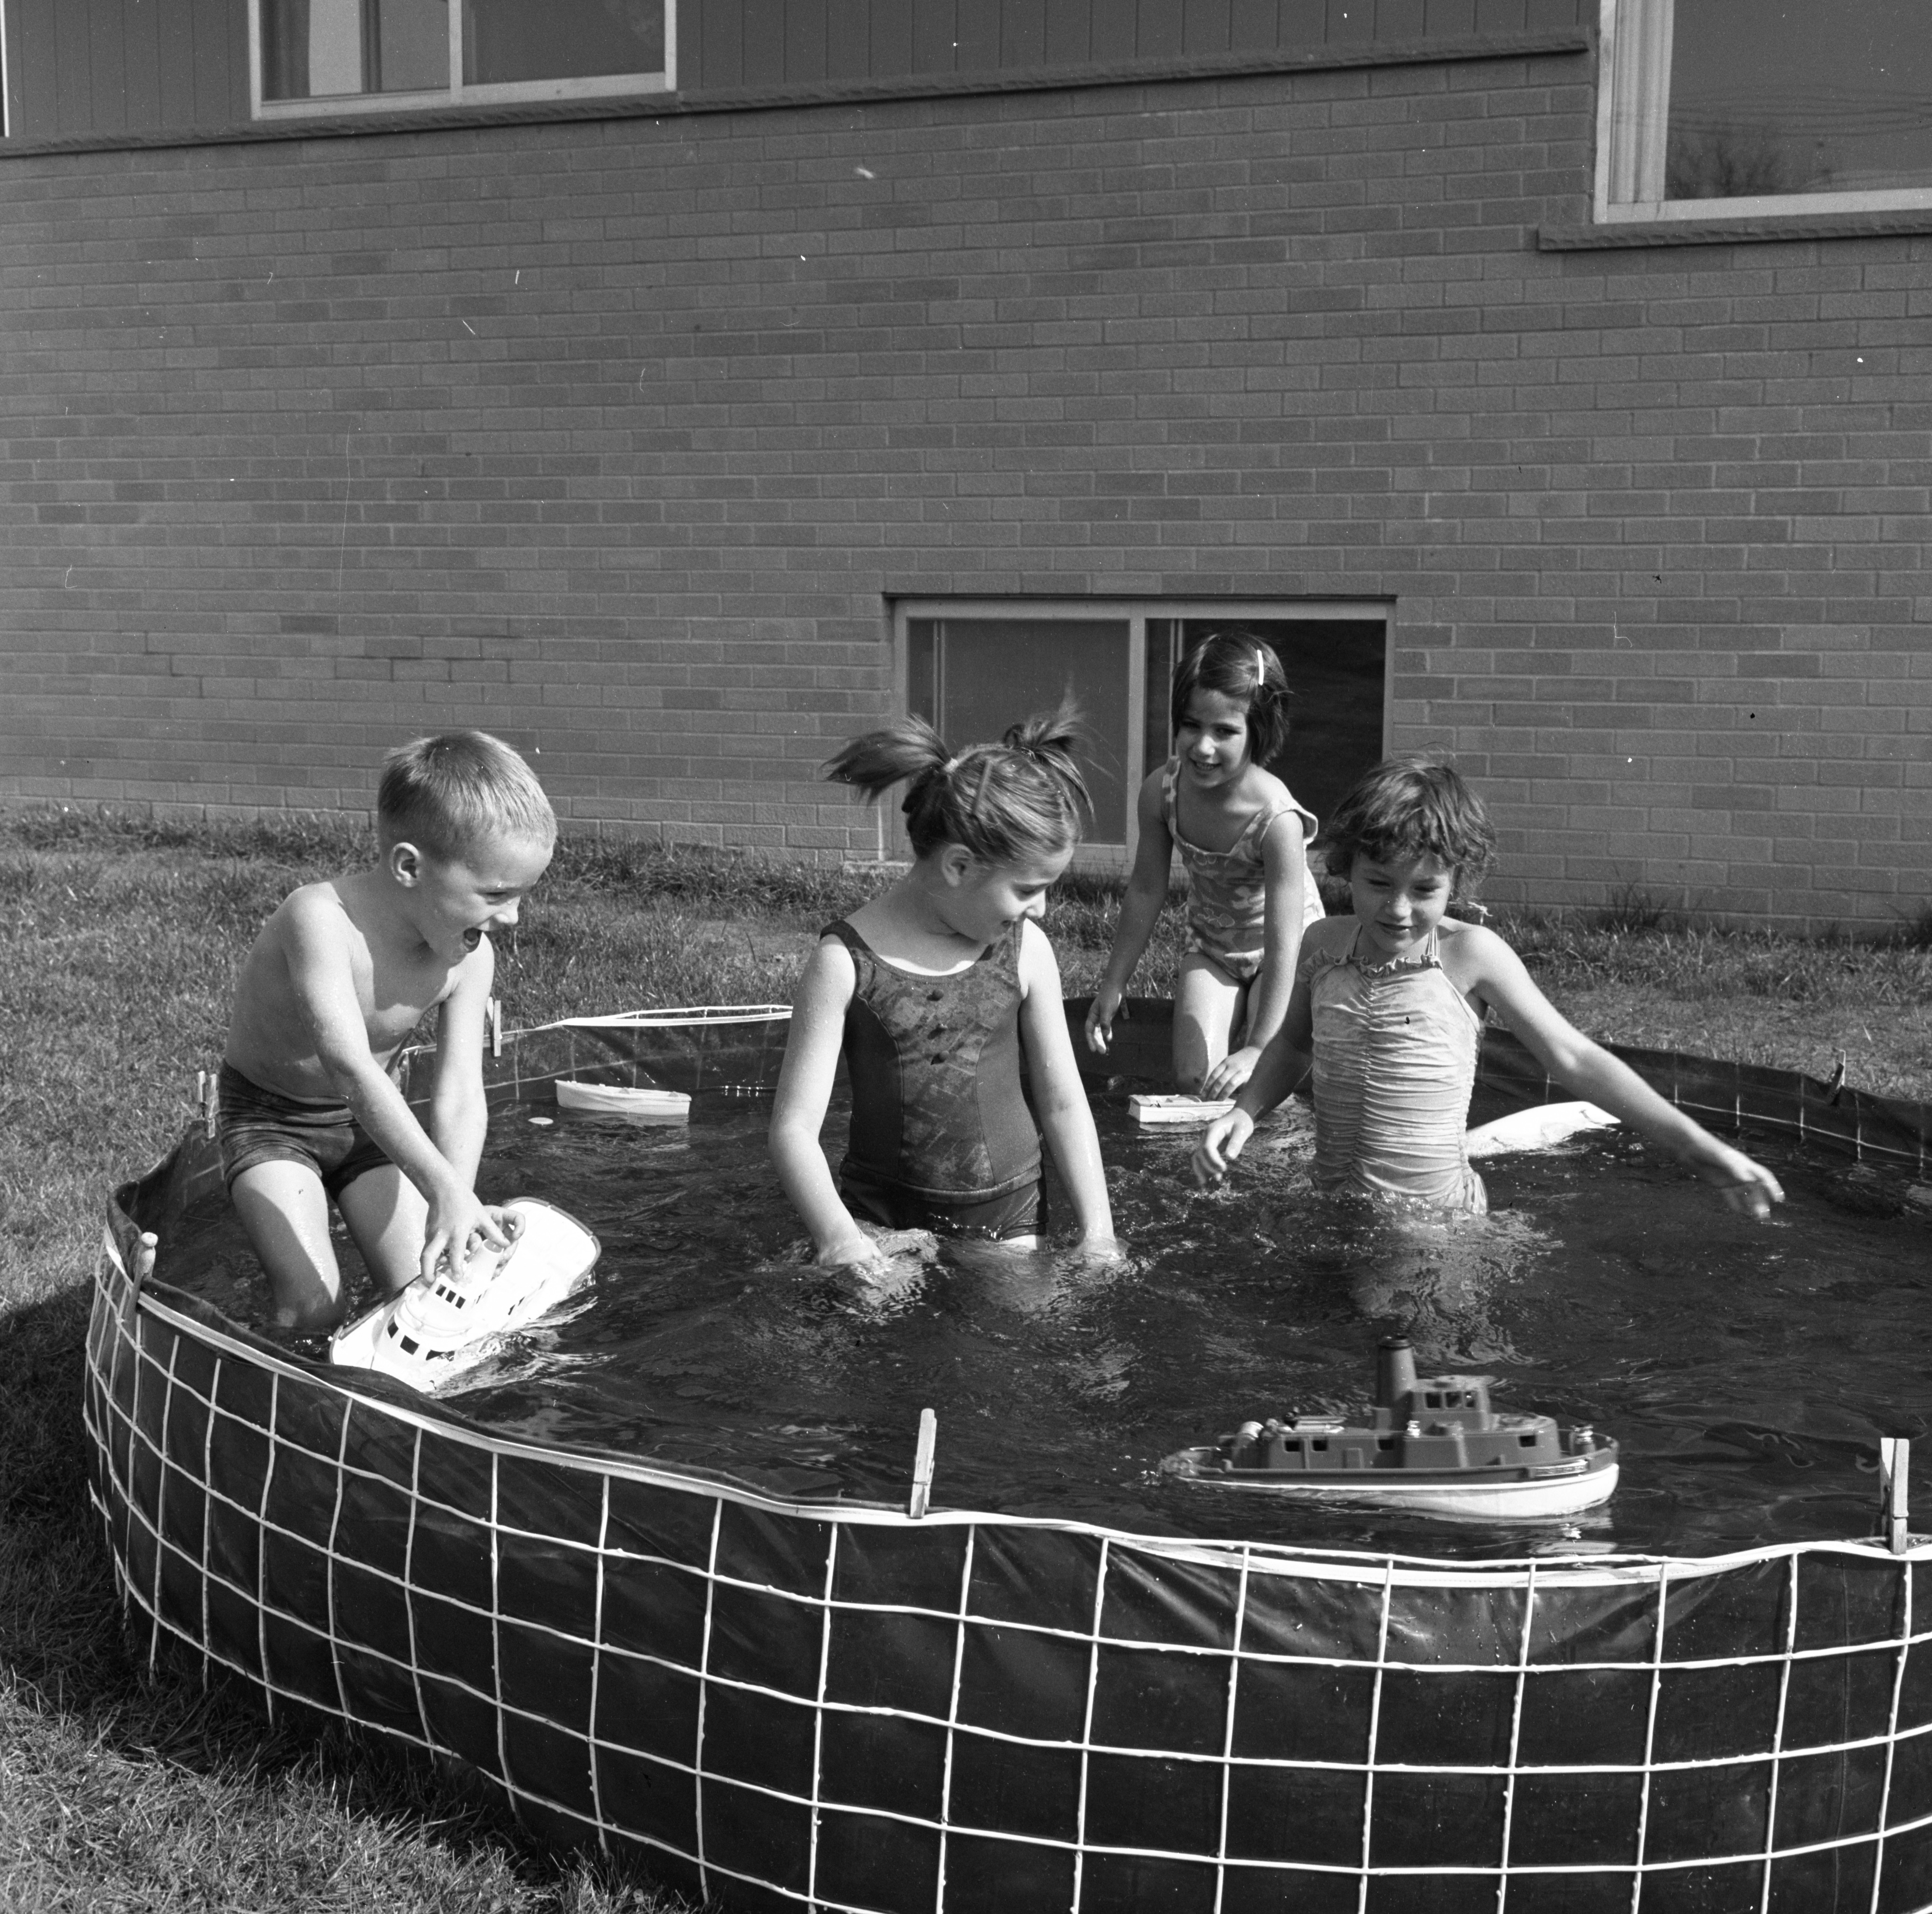 Children Enjoy A Wading Pool In Warm October Weather, October 1963 image